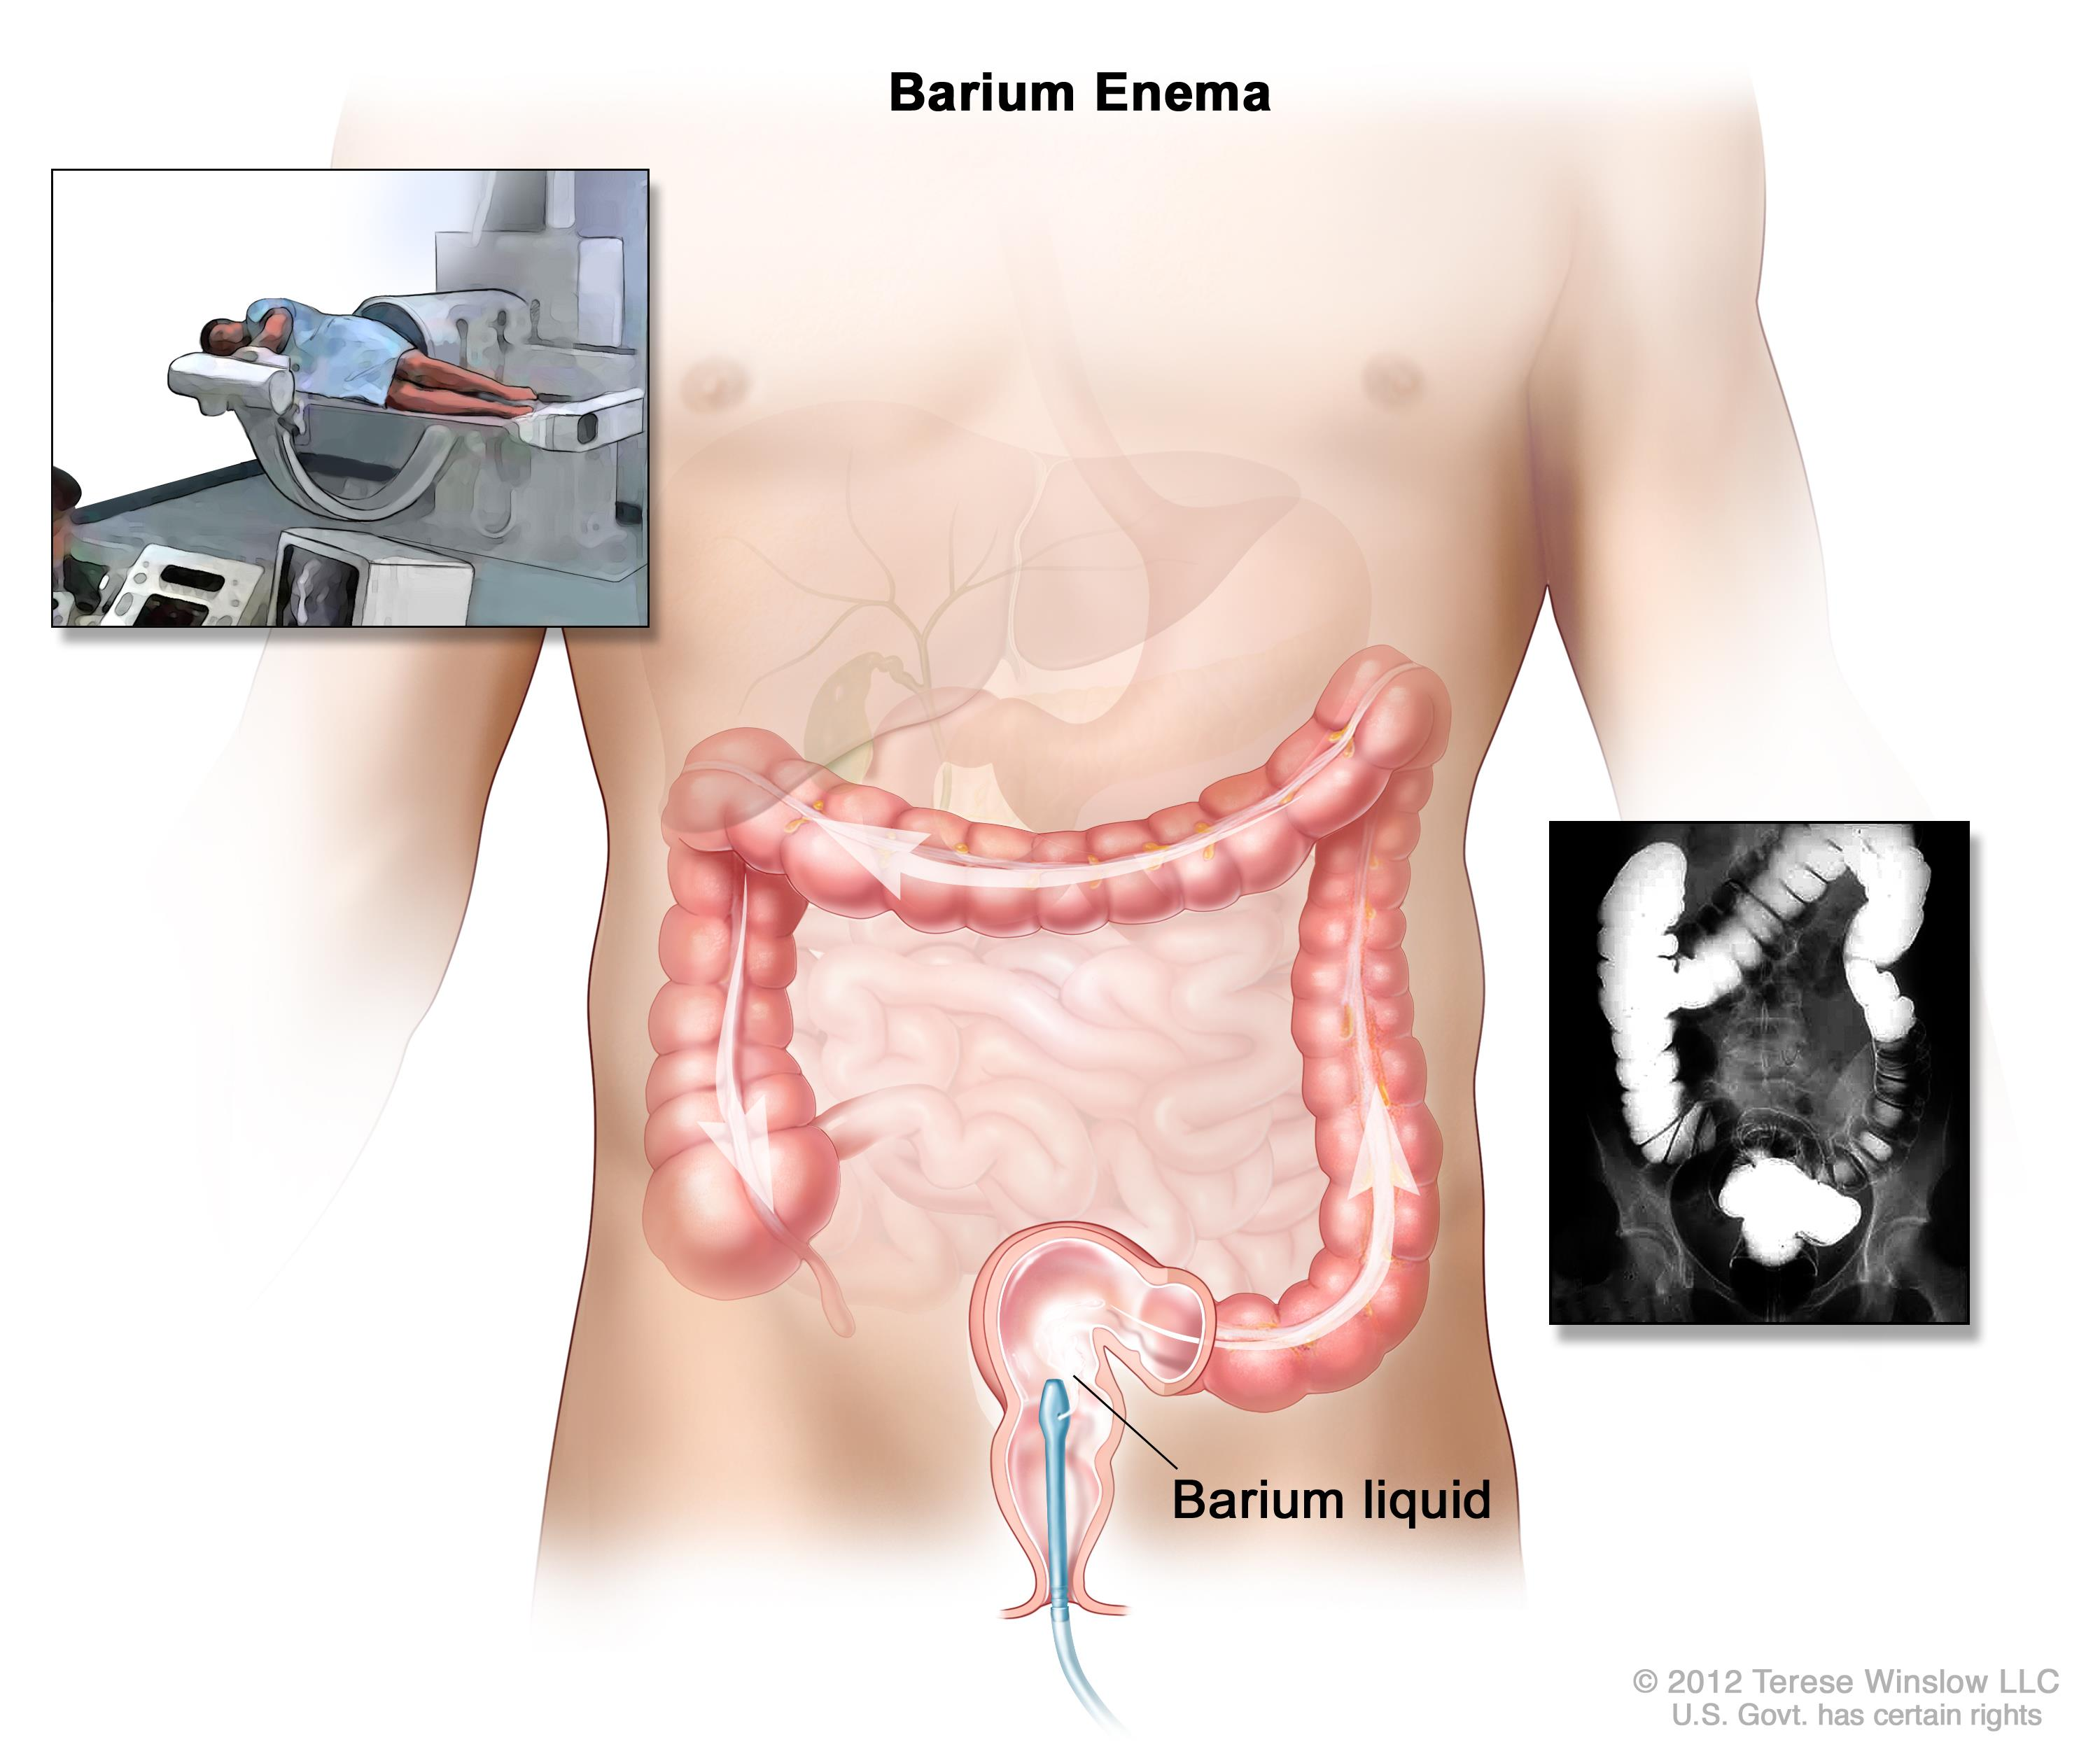 Barium enema procedure; shows barium liquid being put into the rectum and flowing through the colon.  Inset shows person on table having a barium enema.